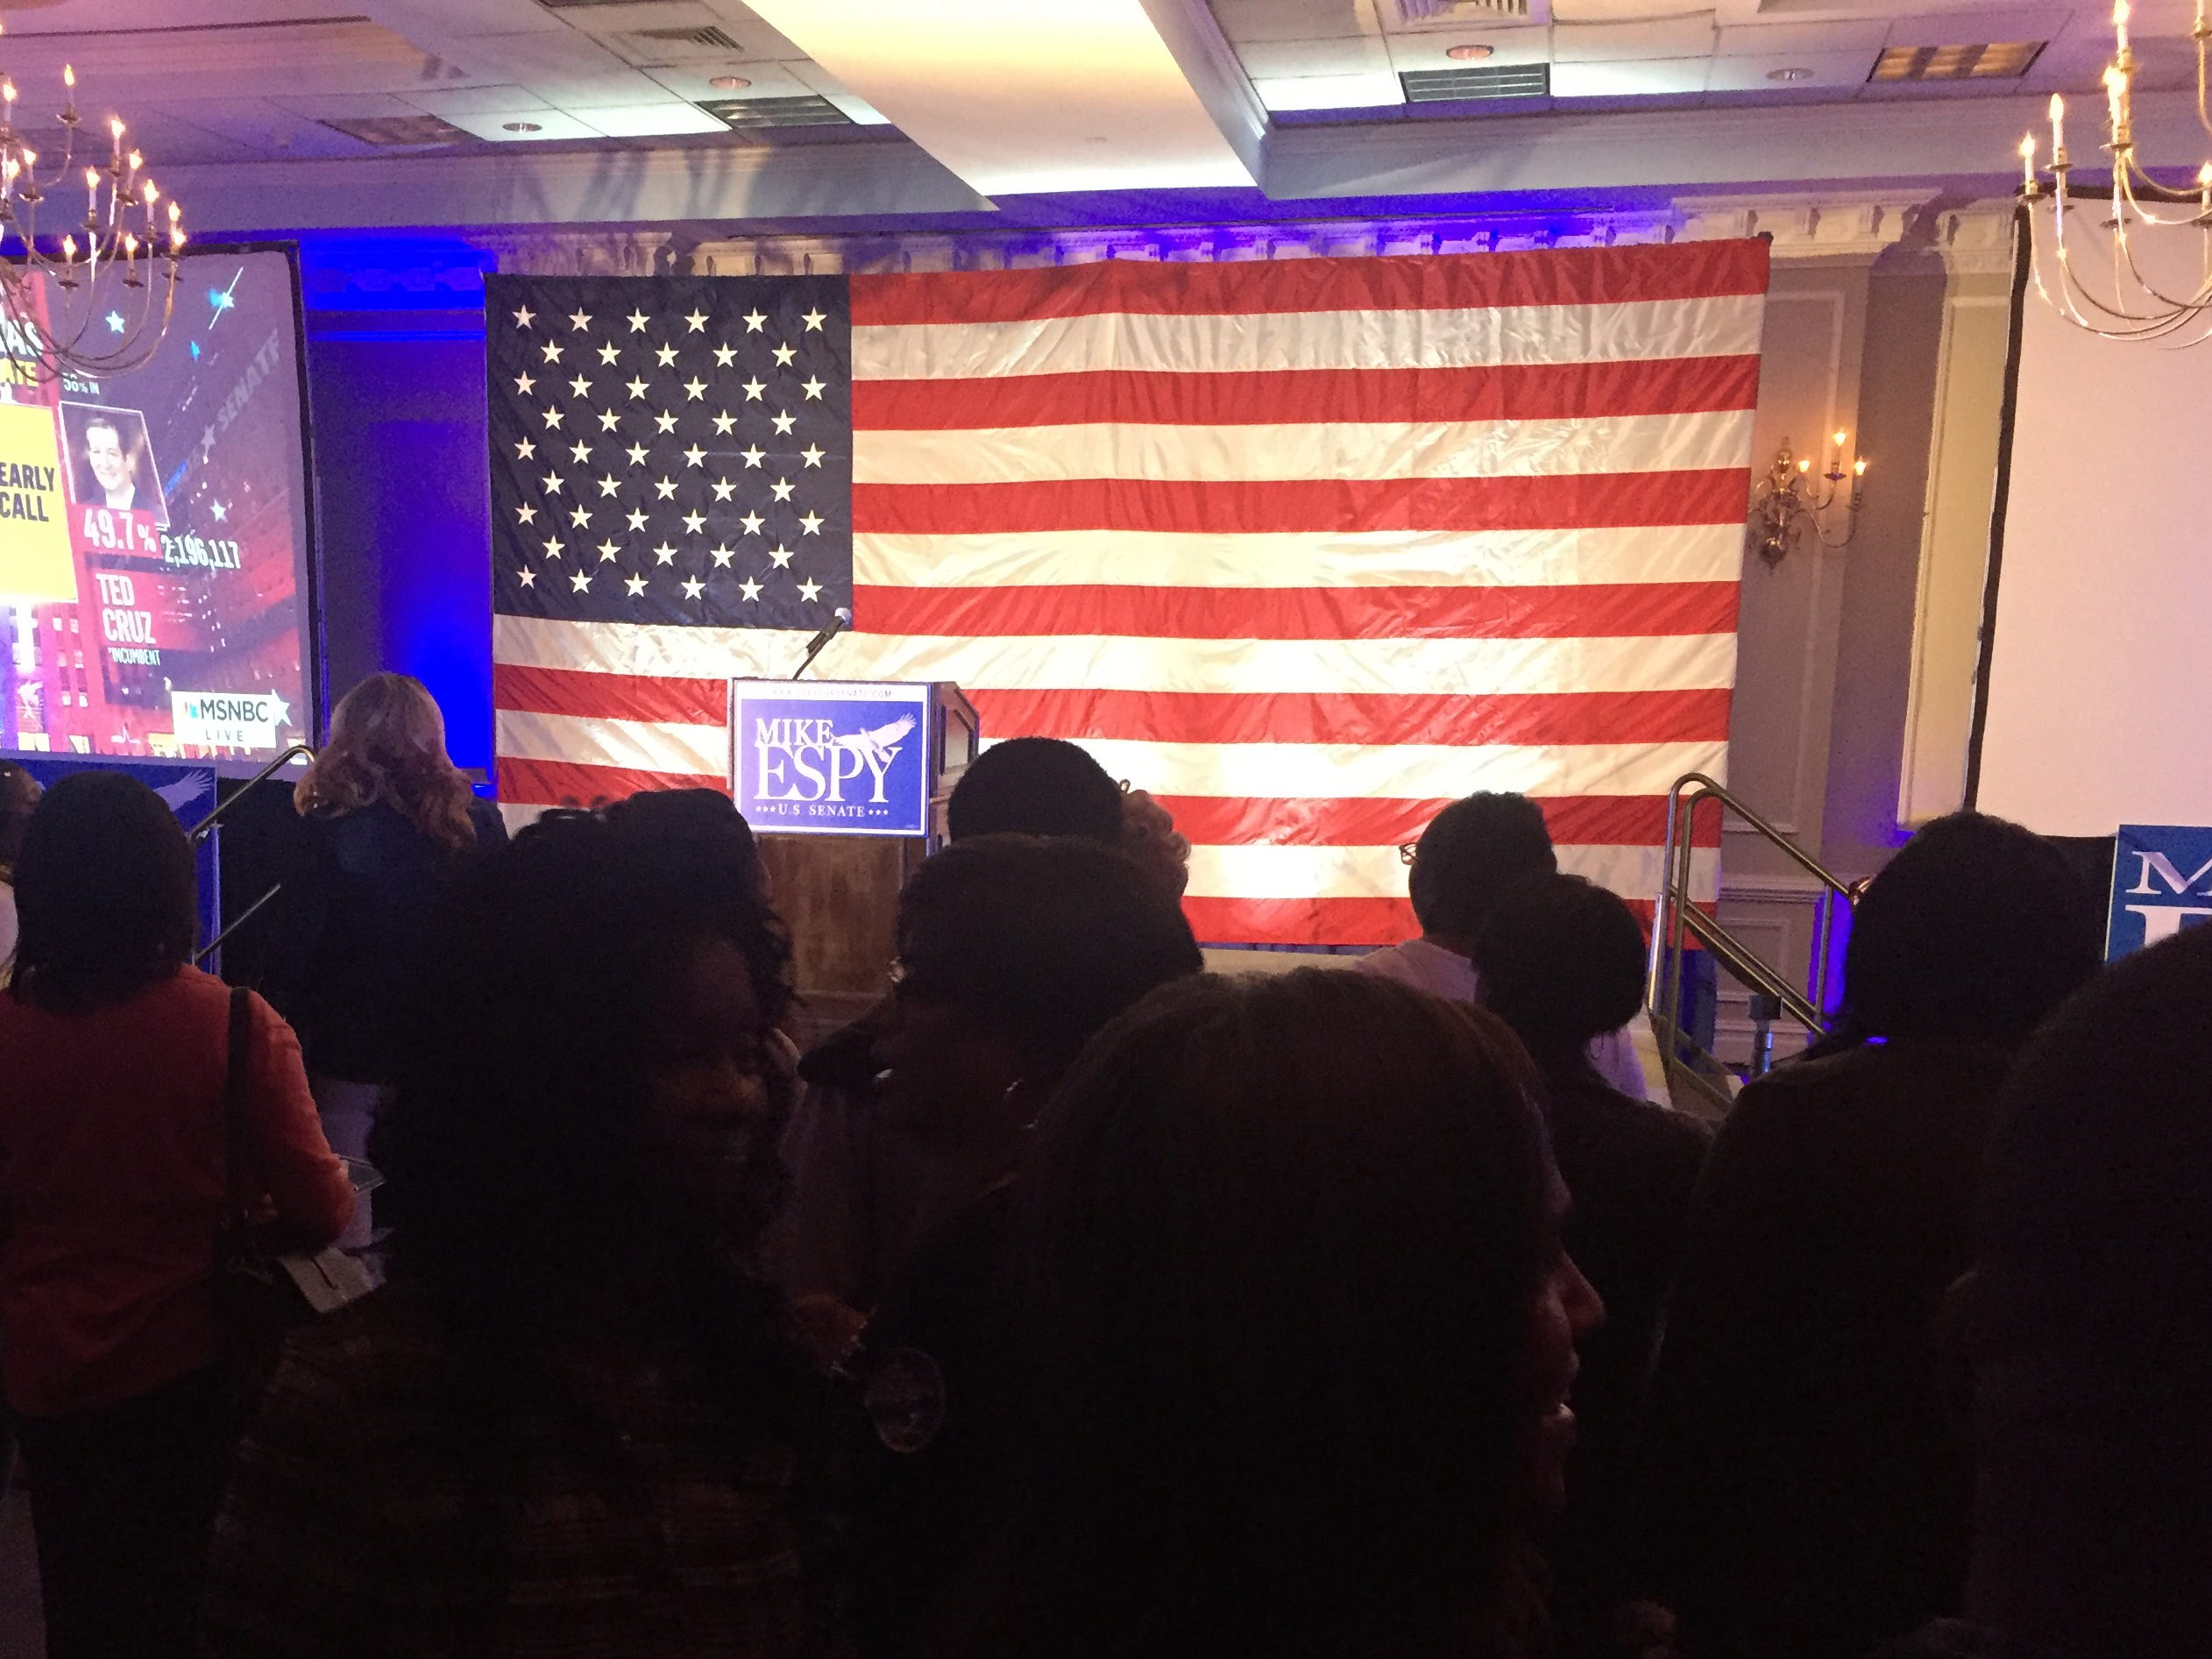 Mike Espy supporters gather at the Hilton Jackson on County Line Road for his election night result party on Tuesday, Nov. 6, 2018. There will be a runoff between Democrat Espy and Republican Cindy Hyde Smith on Nov. 27.